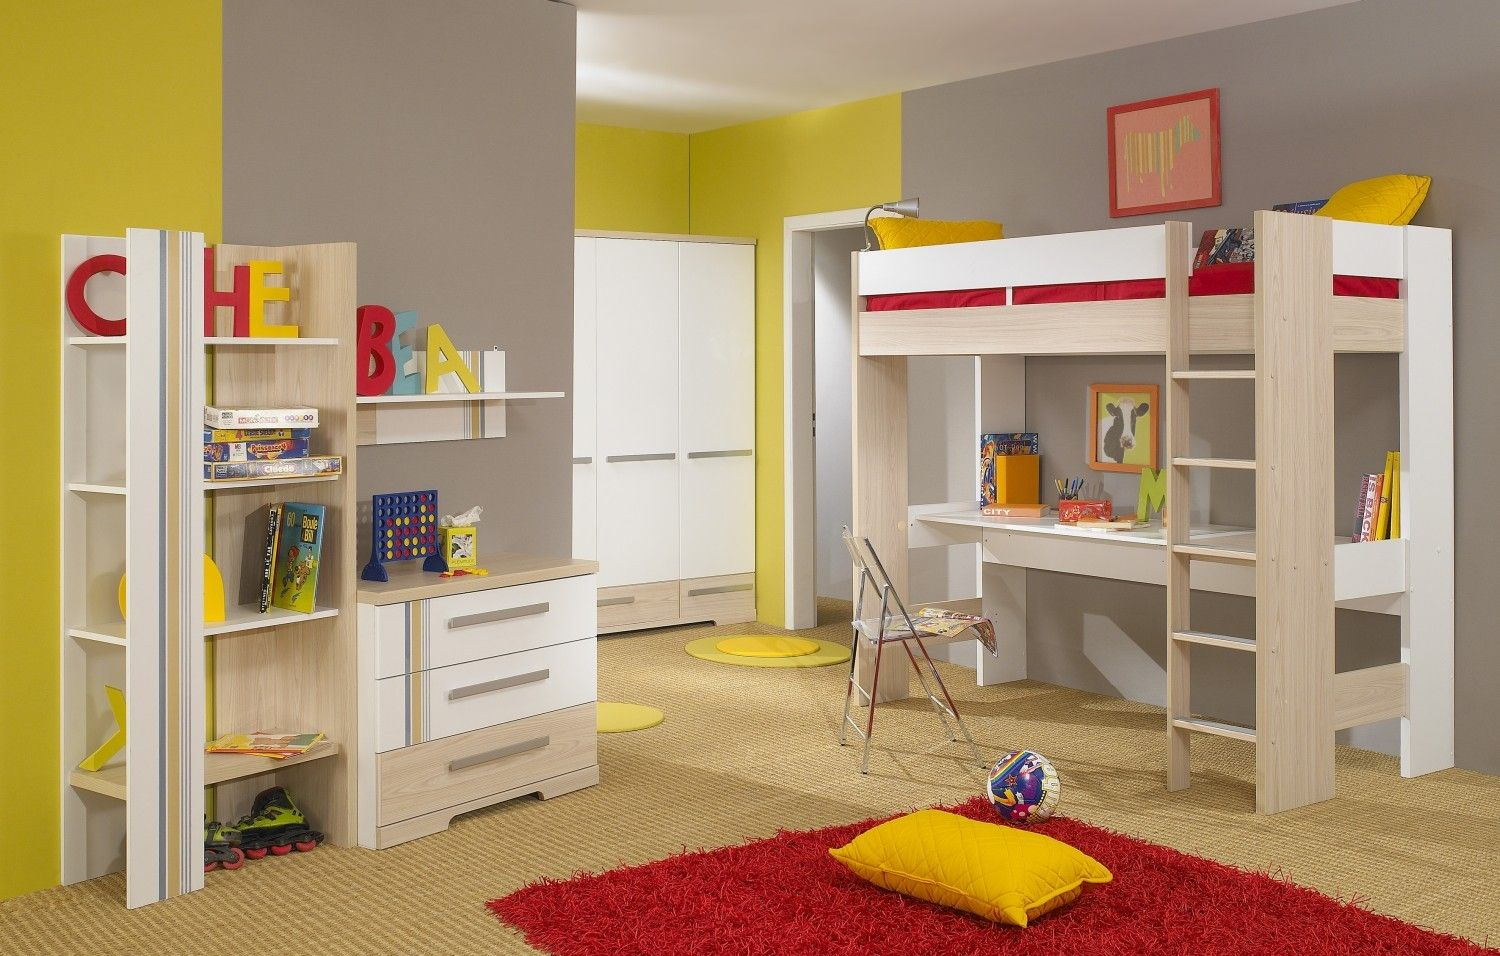 Loft bed desk ideas   Cool Bunk Bed With Desk Designs  Bunk bed Wooden frames and